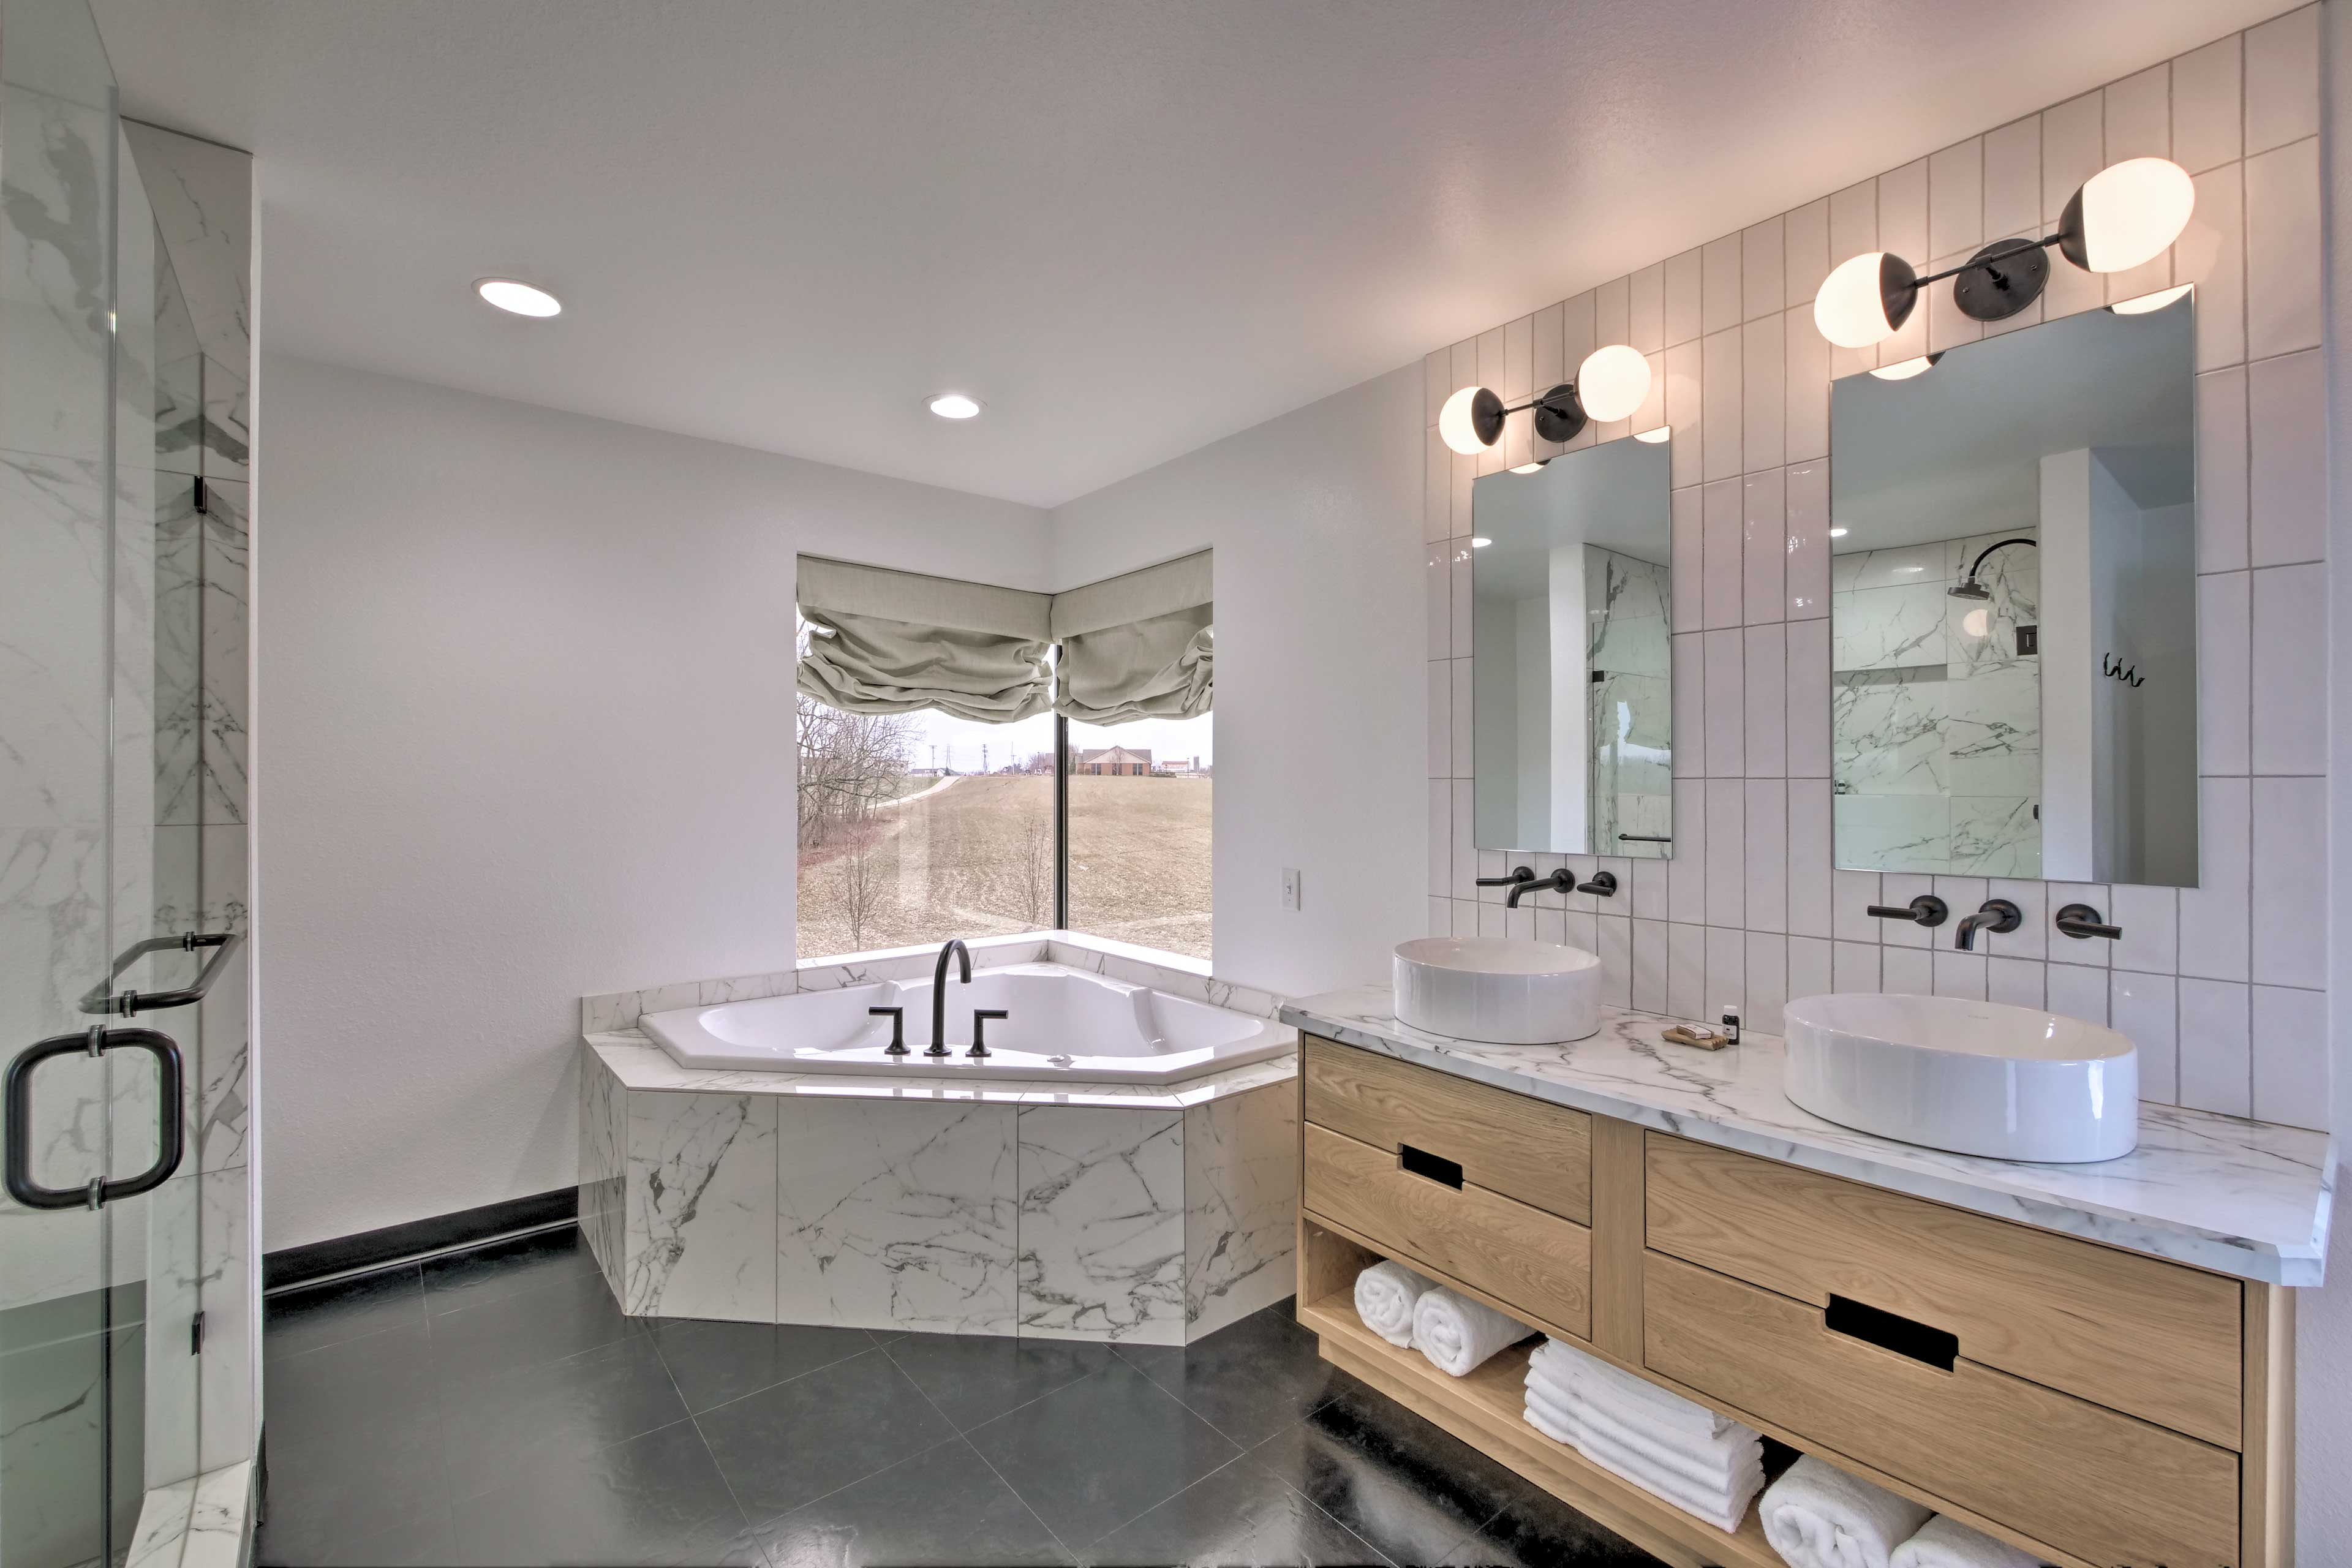 The en-suite bathroom includes a large soaking tub and walk-in shower.